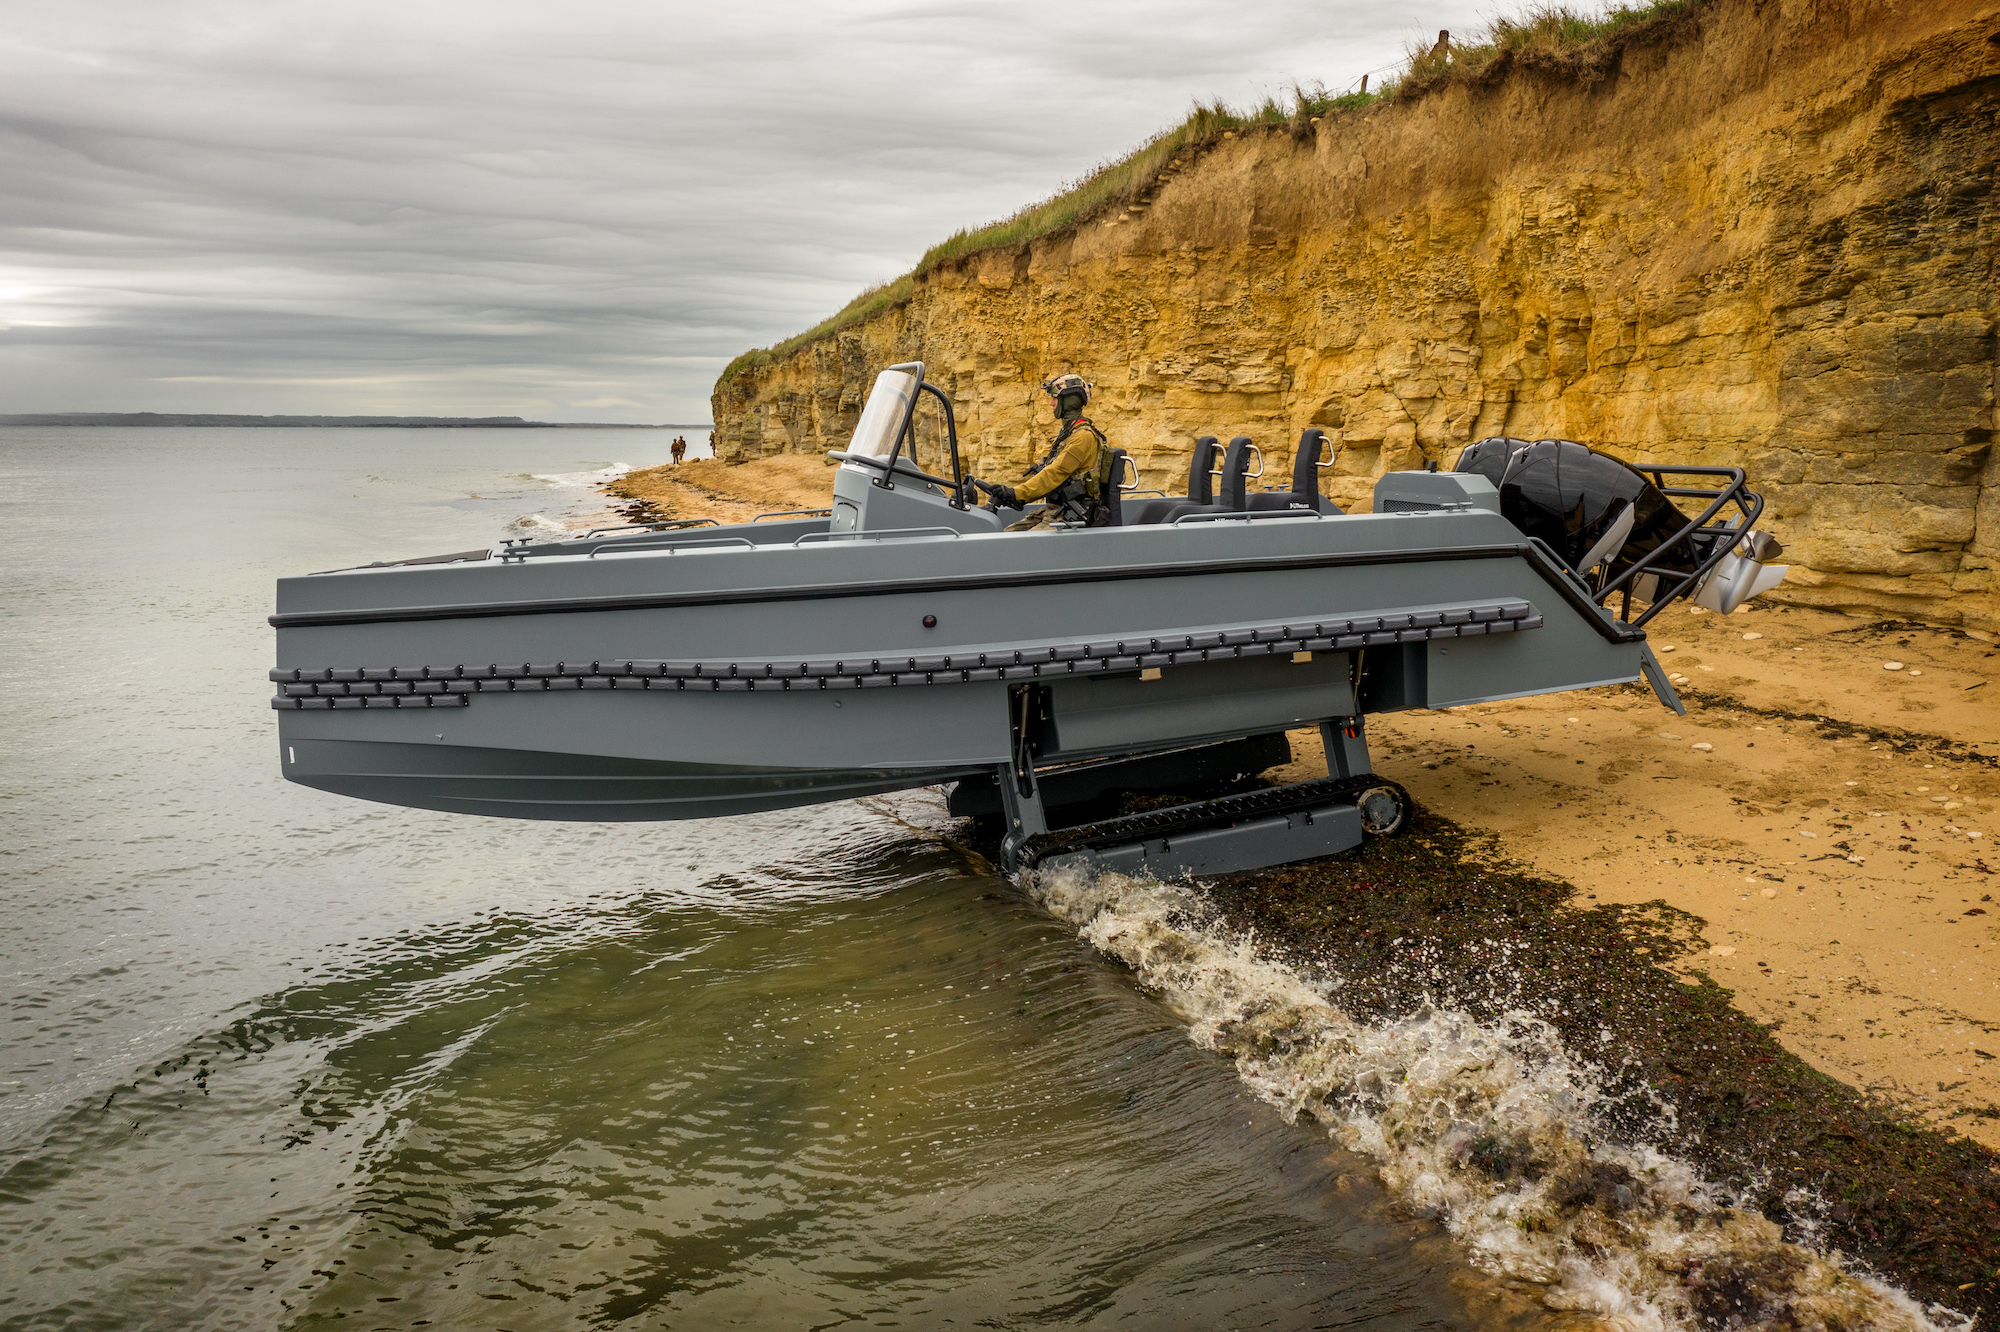 This military speedboat moves from water to land without wheels